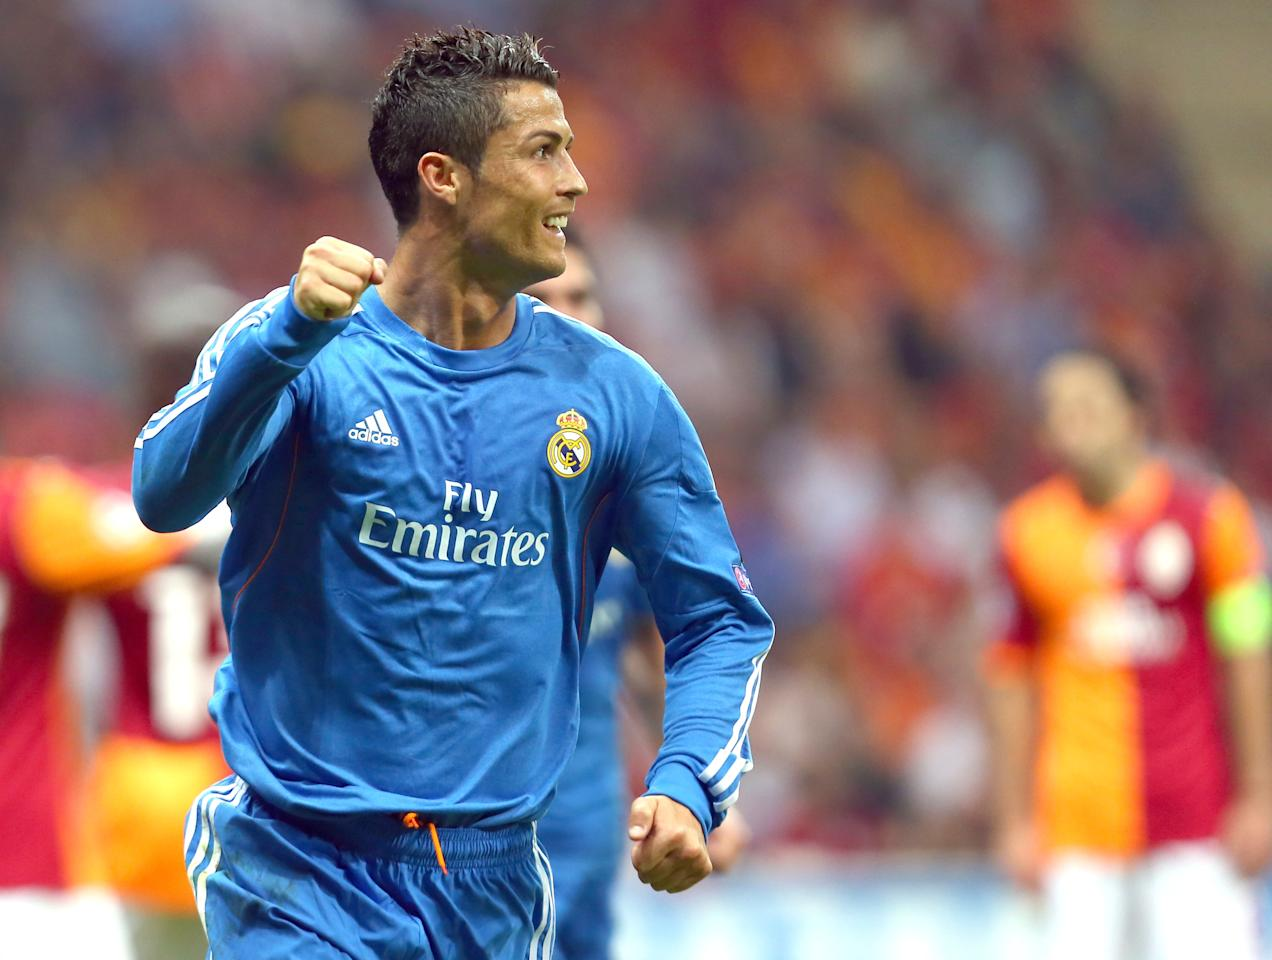 ISTANBUL, TURKEY- SEPTEMBER 17: Christiano Ronaldo of Real Madrid celebrates his goal against Galatasaray during UEFA Champions League Group B match at the Ali Sami Yen Area on September 17, 2013 in Istanbul, Turkey. (Photo by Burak Kara/Getty Images)